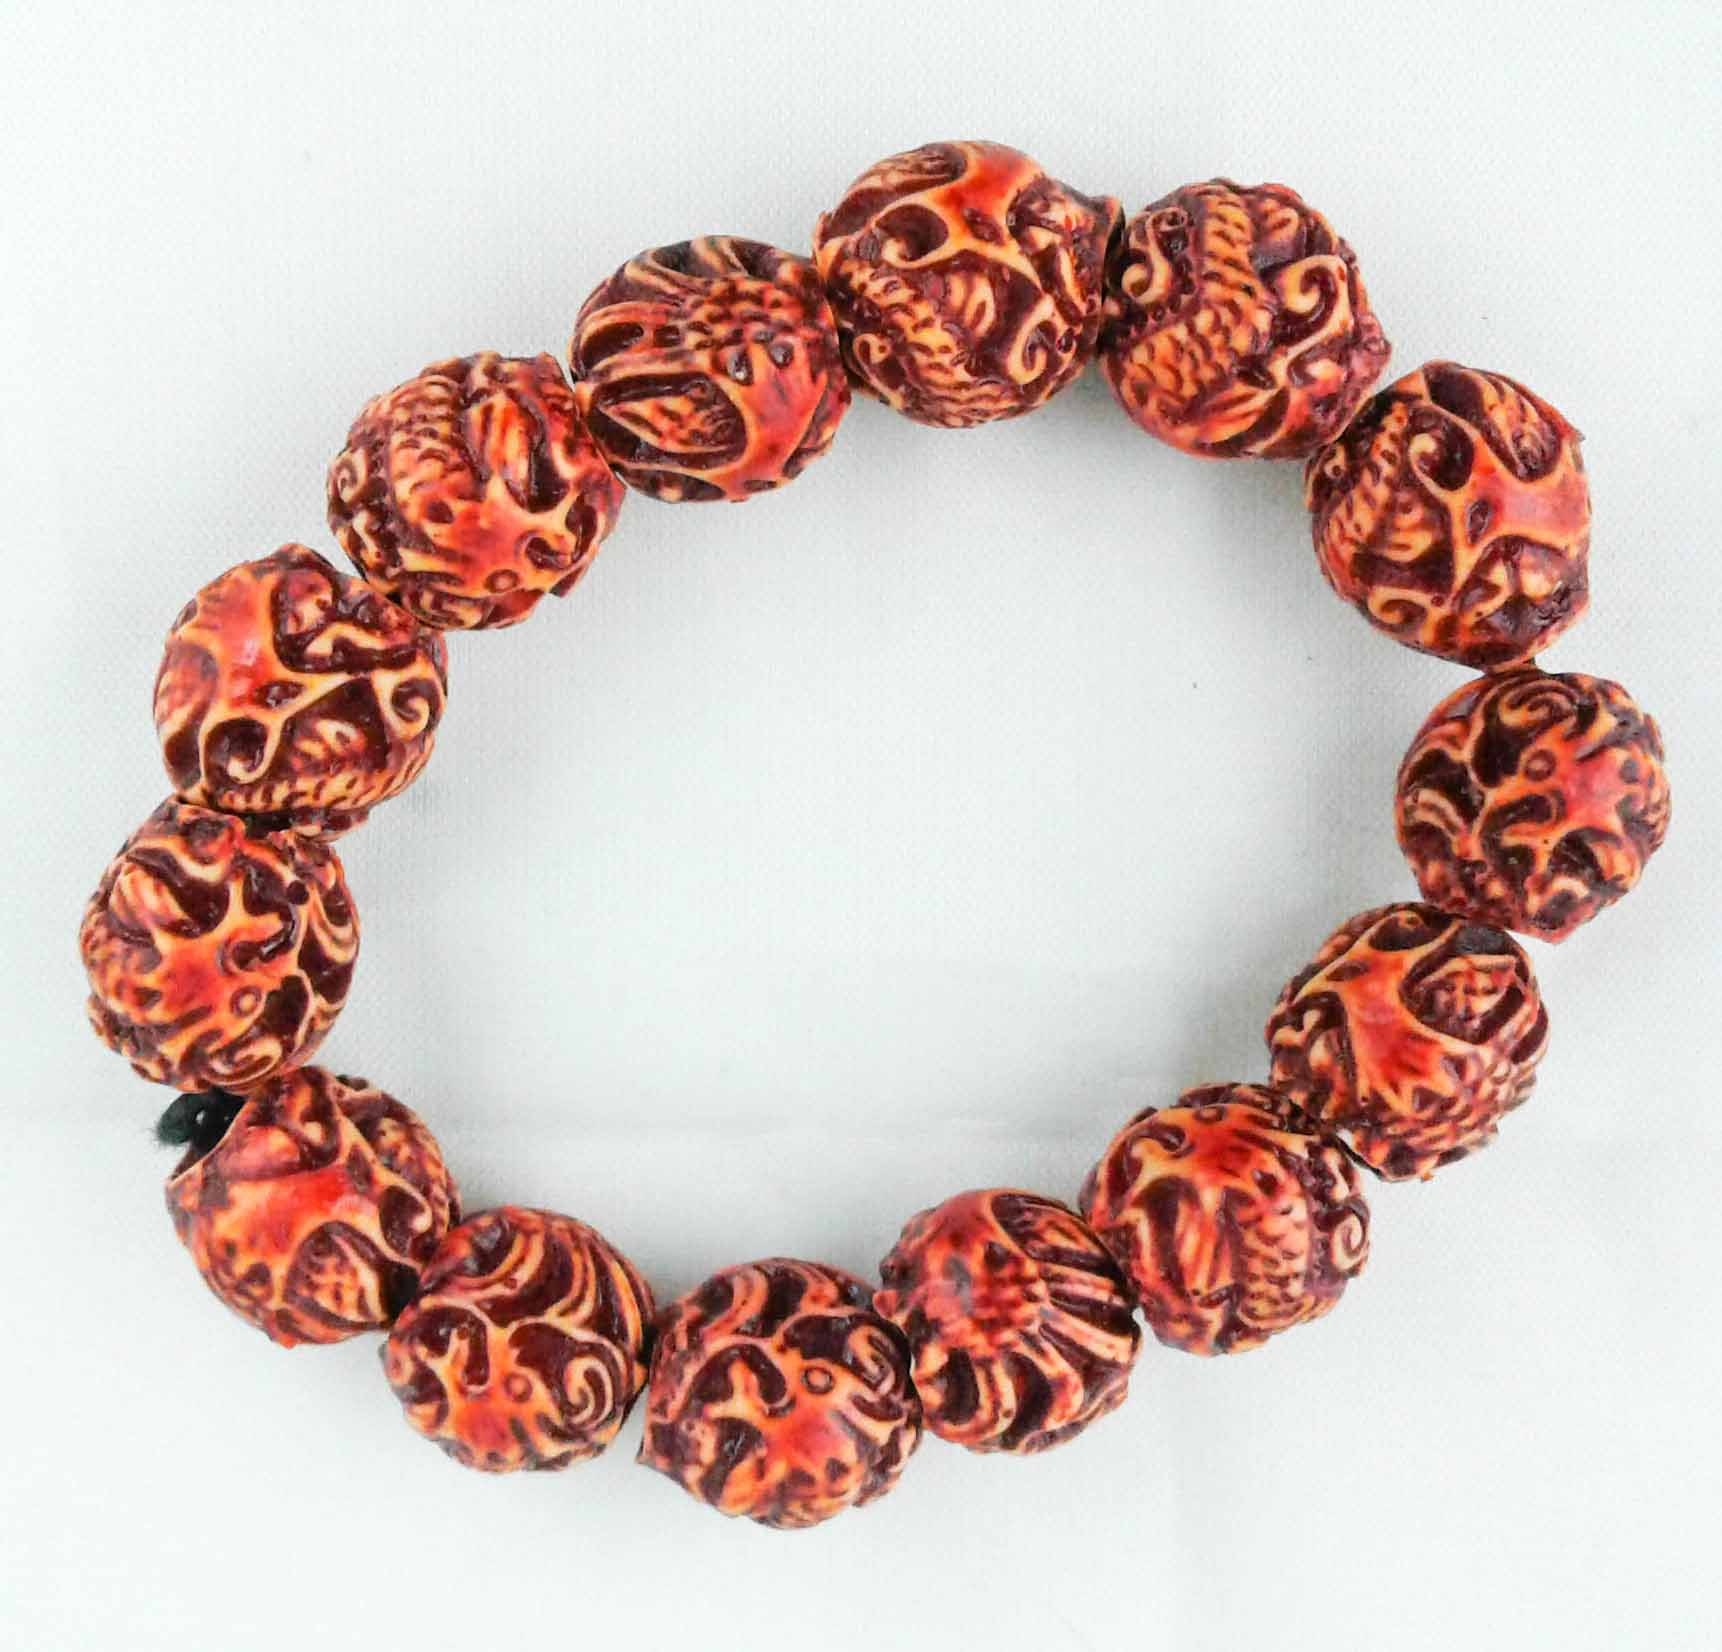 HandCarved Wood Bead Bracelet